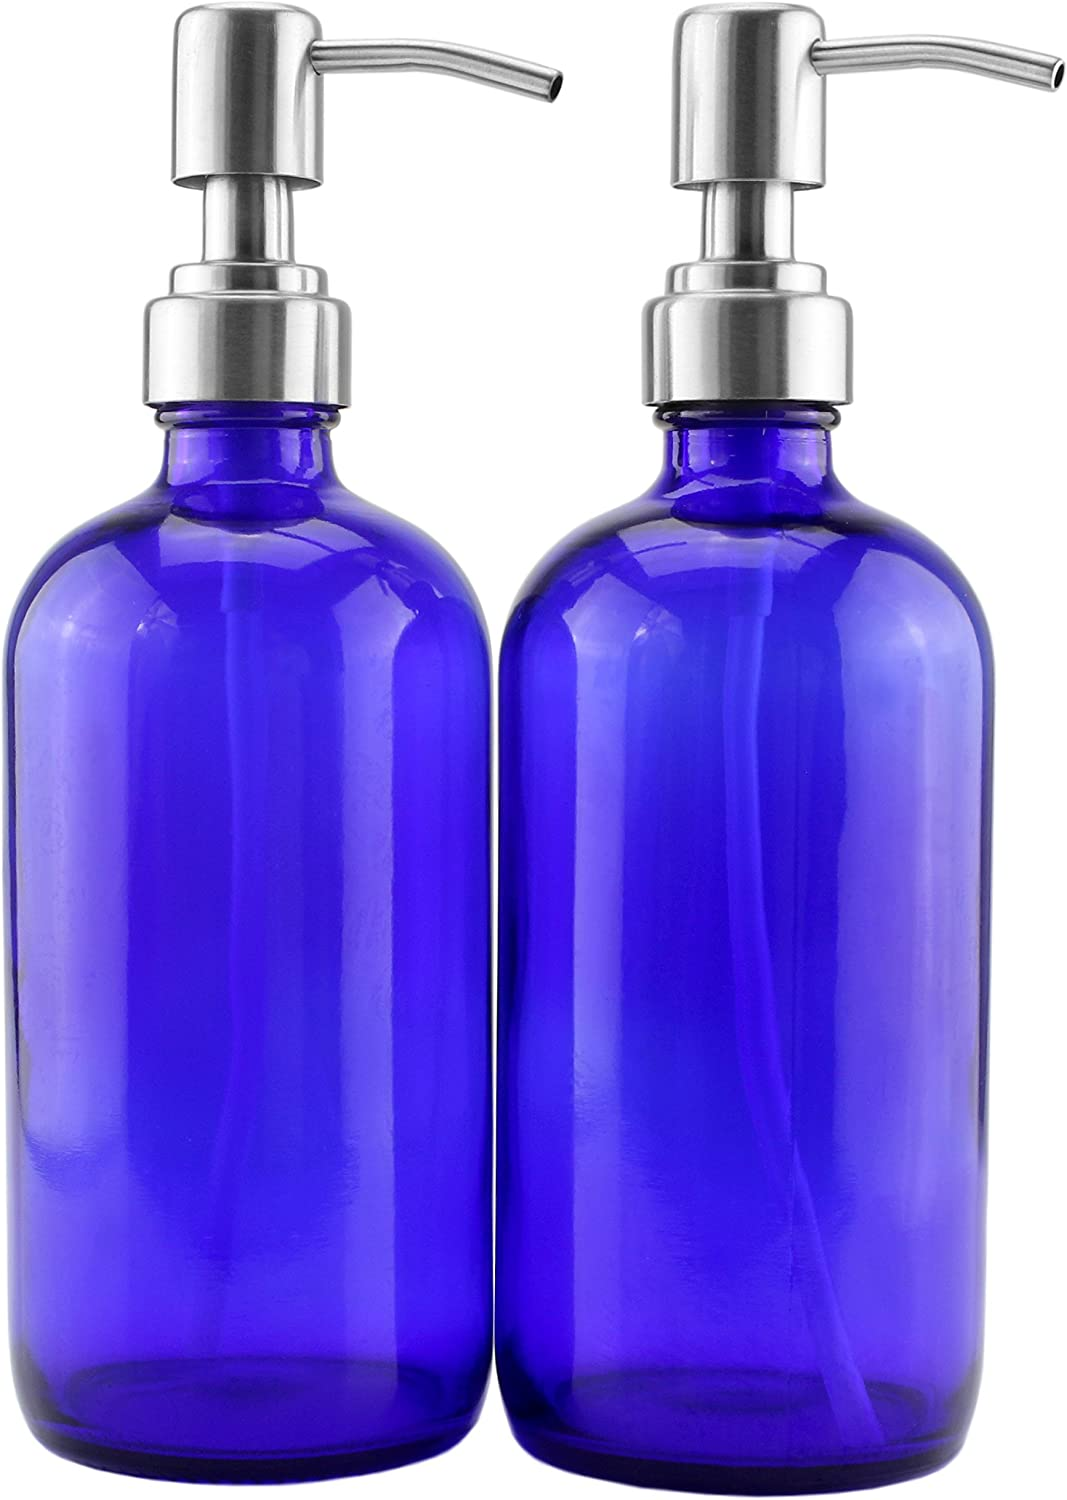 16-Ounce Cobalt Blue Glass Bottles w Stainless Steel Pumps 2-Pack , Soap Dispenser w Lotion Pumps for Essential Oil Bottles, Lotions, Liquid Soap, and More